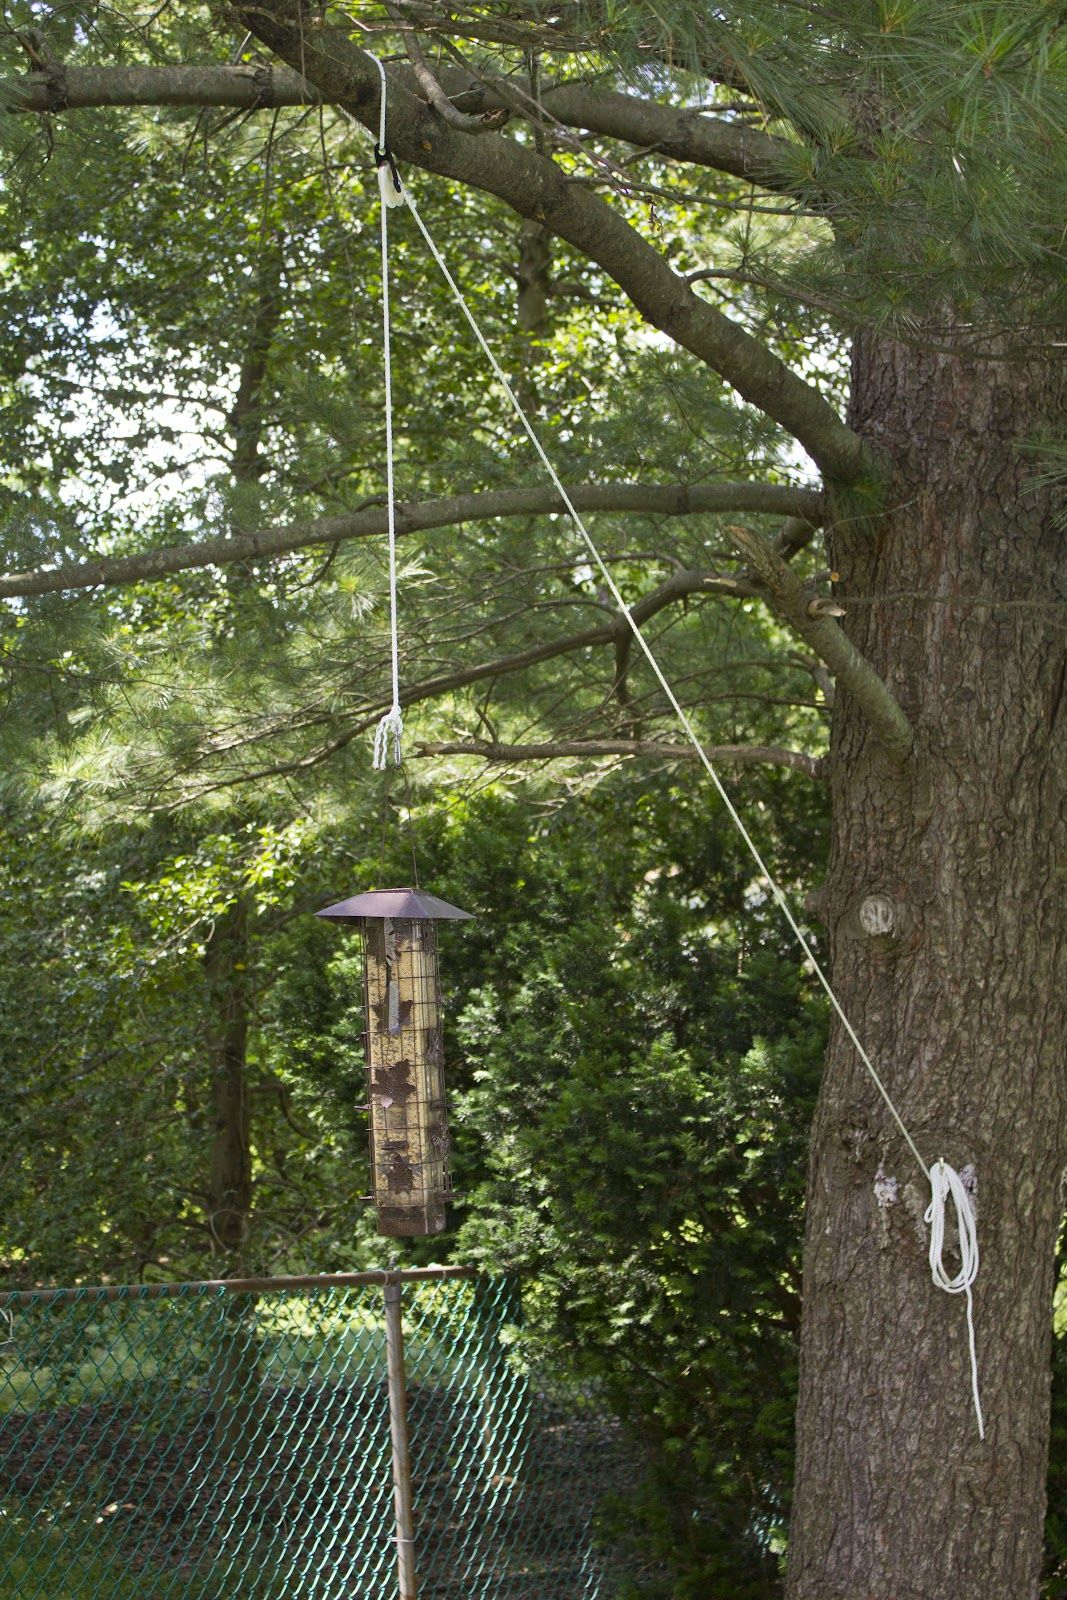 bird feeder pulleys pulley system i rigged to lower the bird